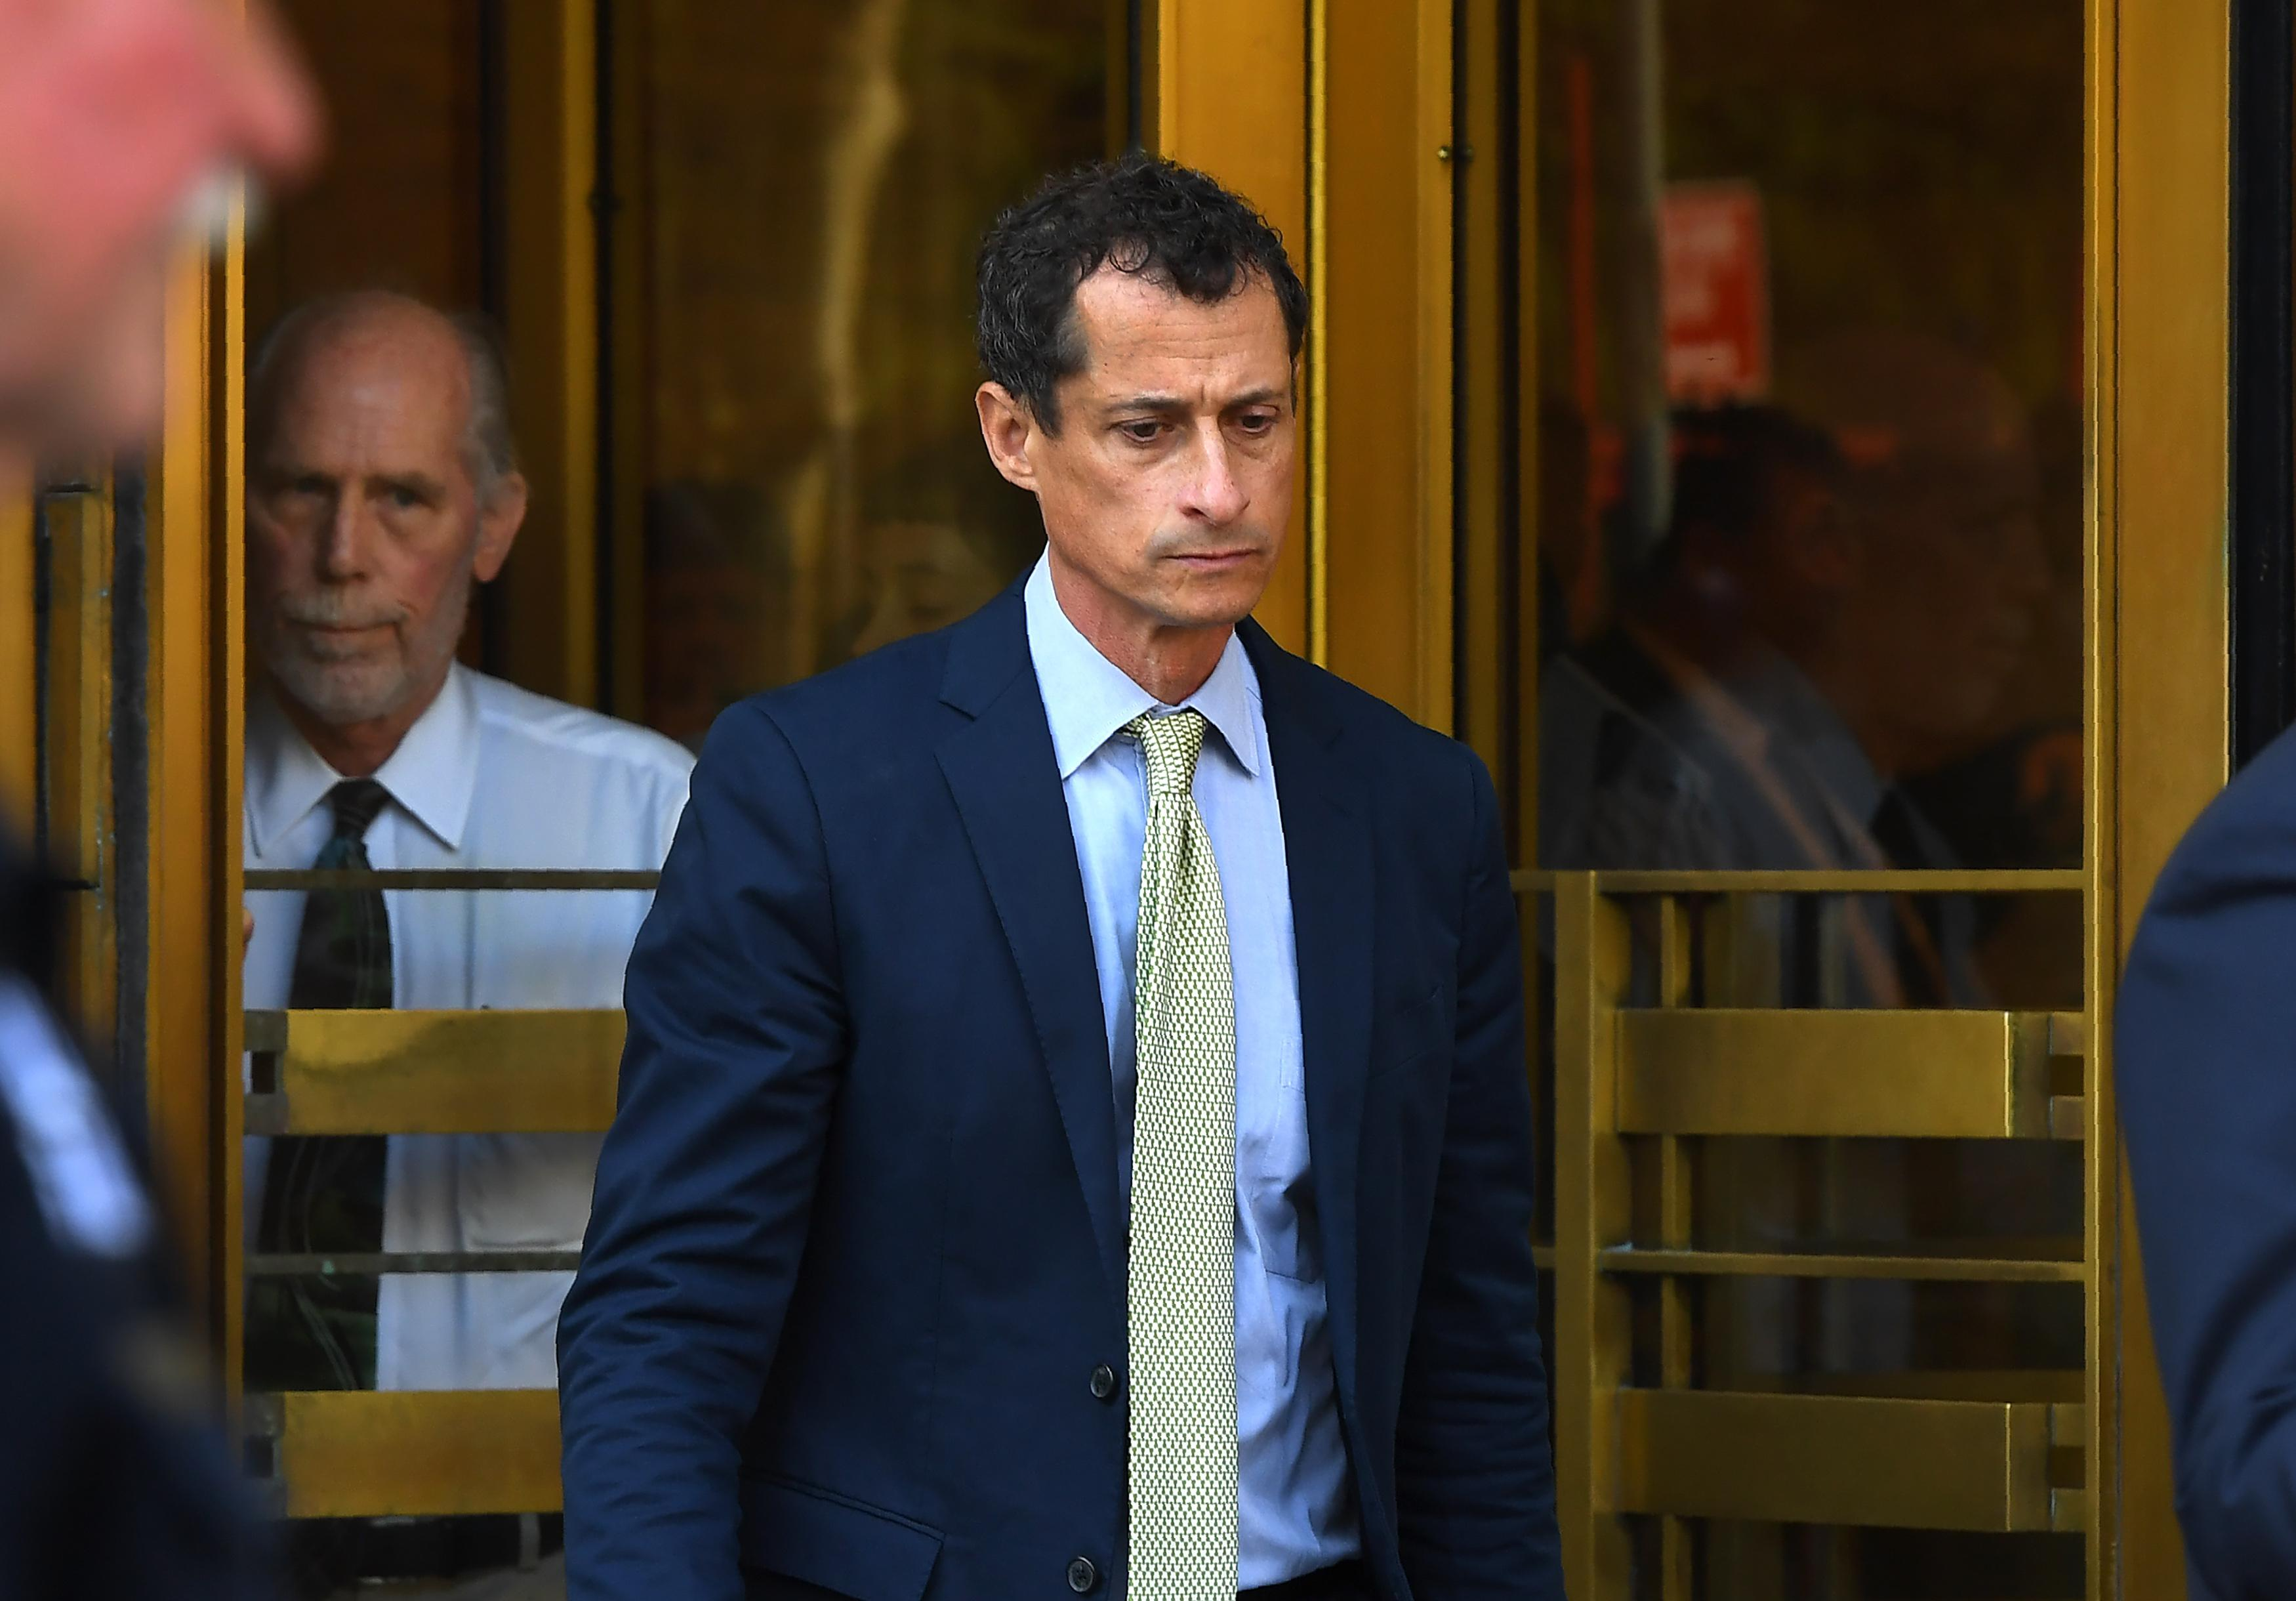 Anthony Weiner leaves Federal Court in New York September 25, 2017 after being sentenced for 21-months for sexting with a 15-year-old girl.